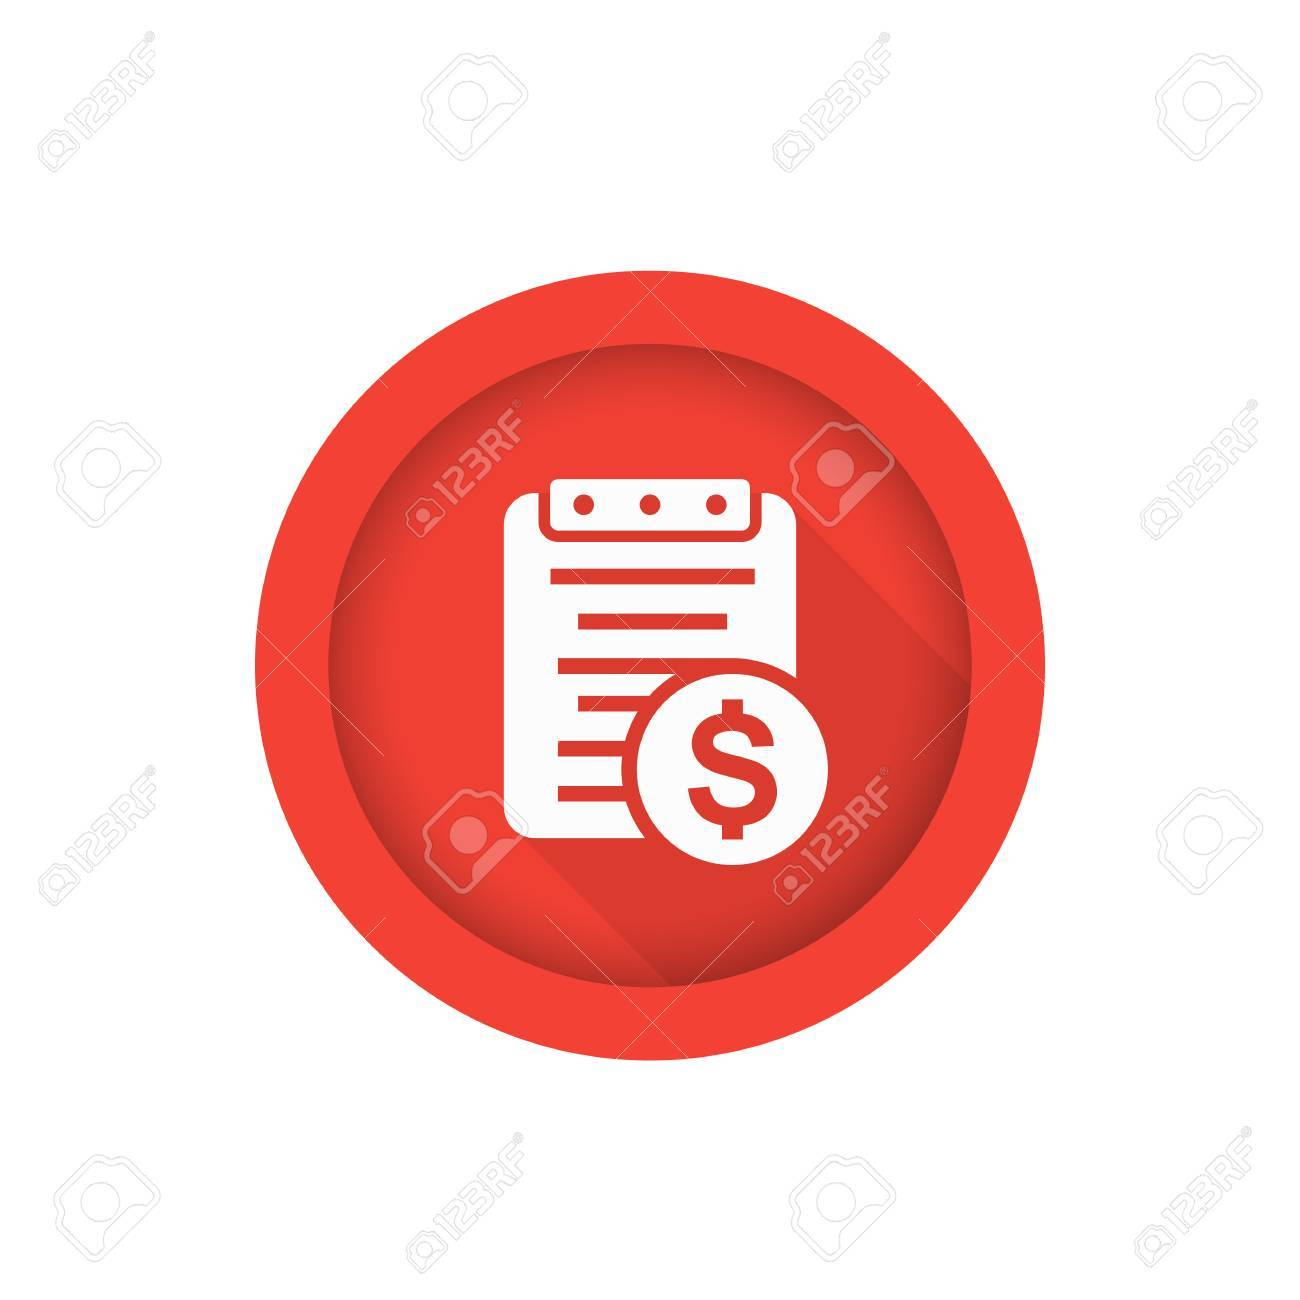 Payroll icon isolated on white